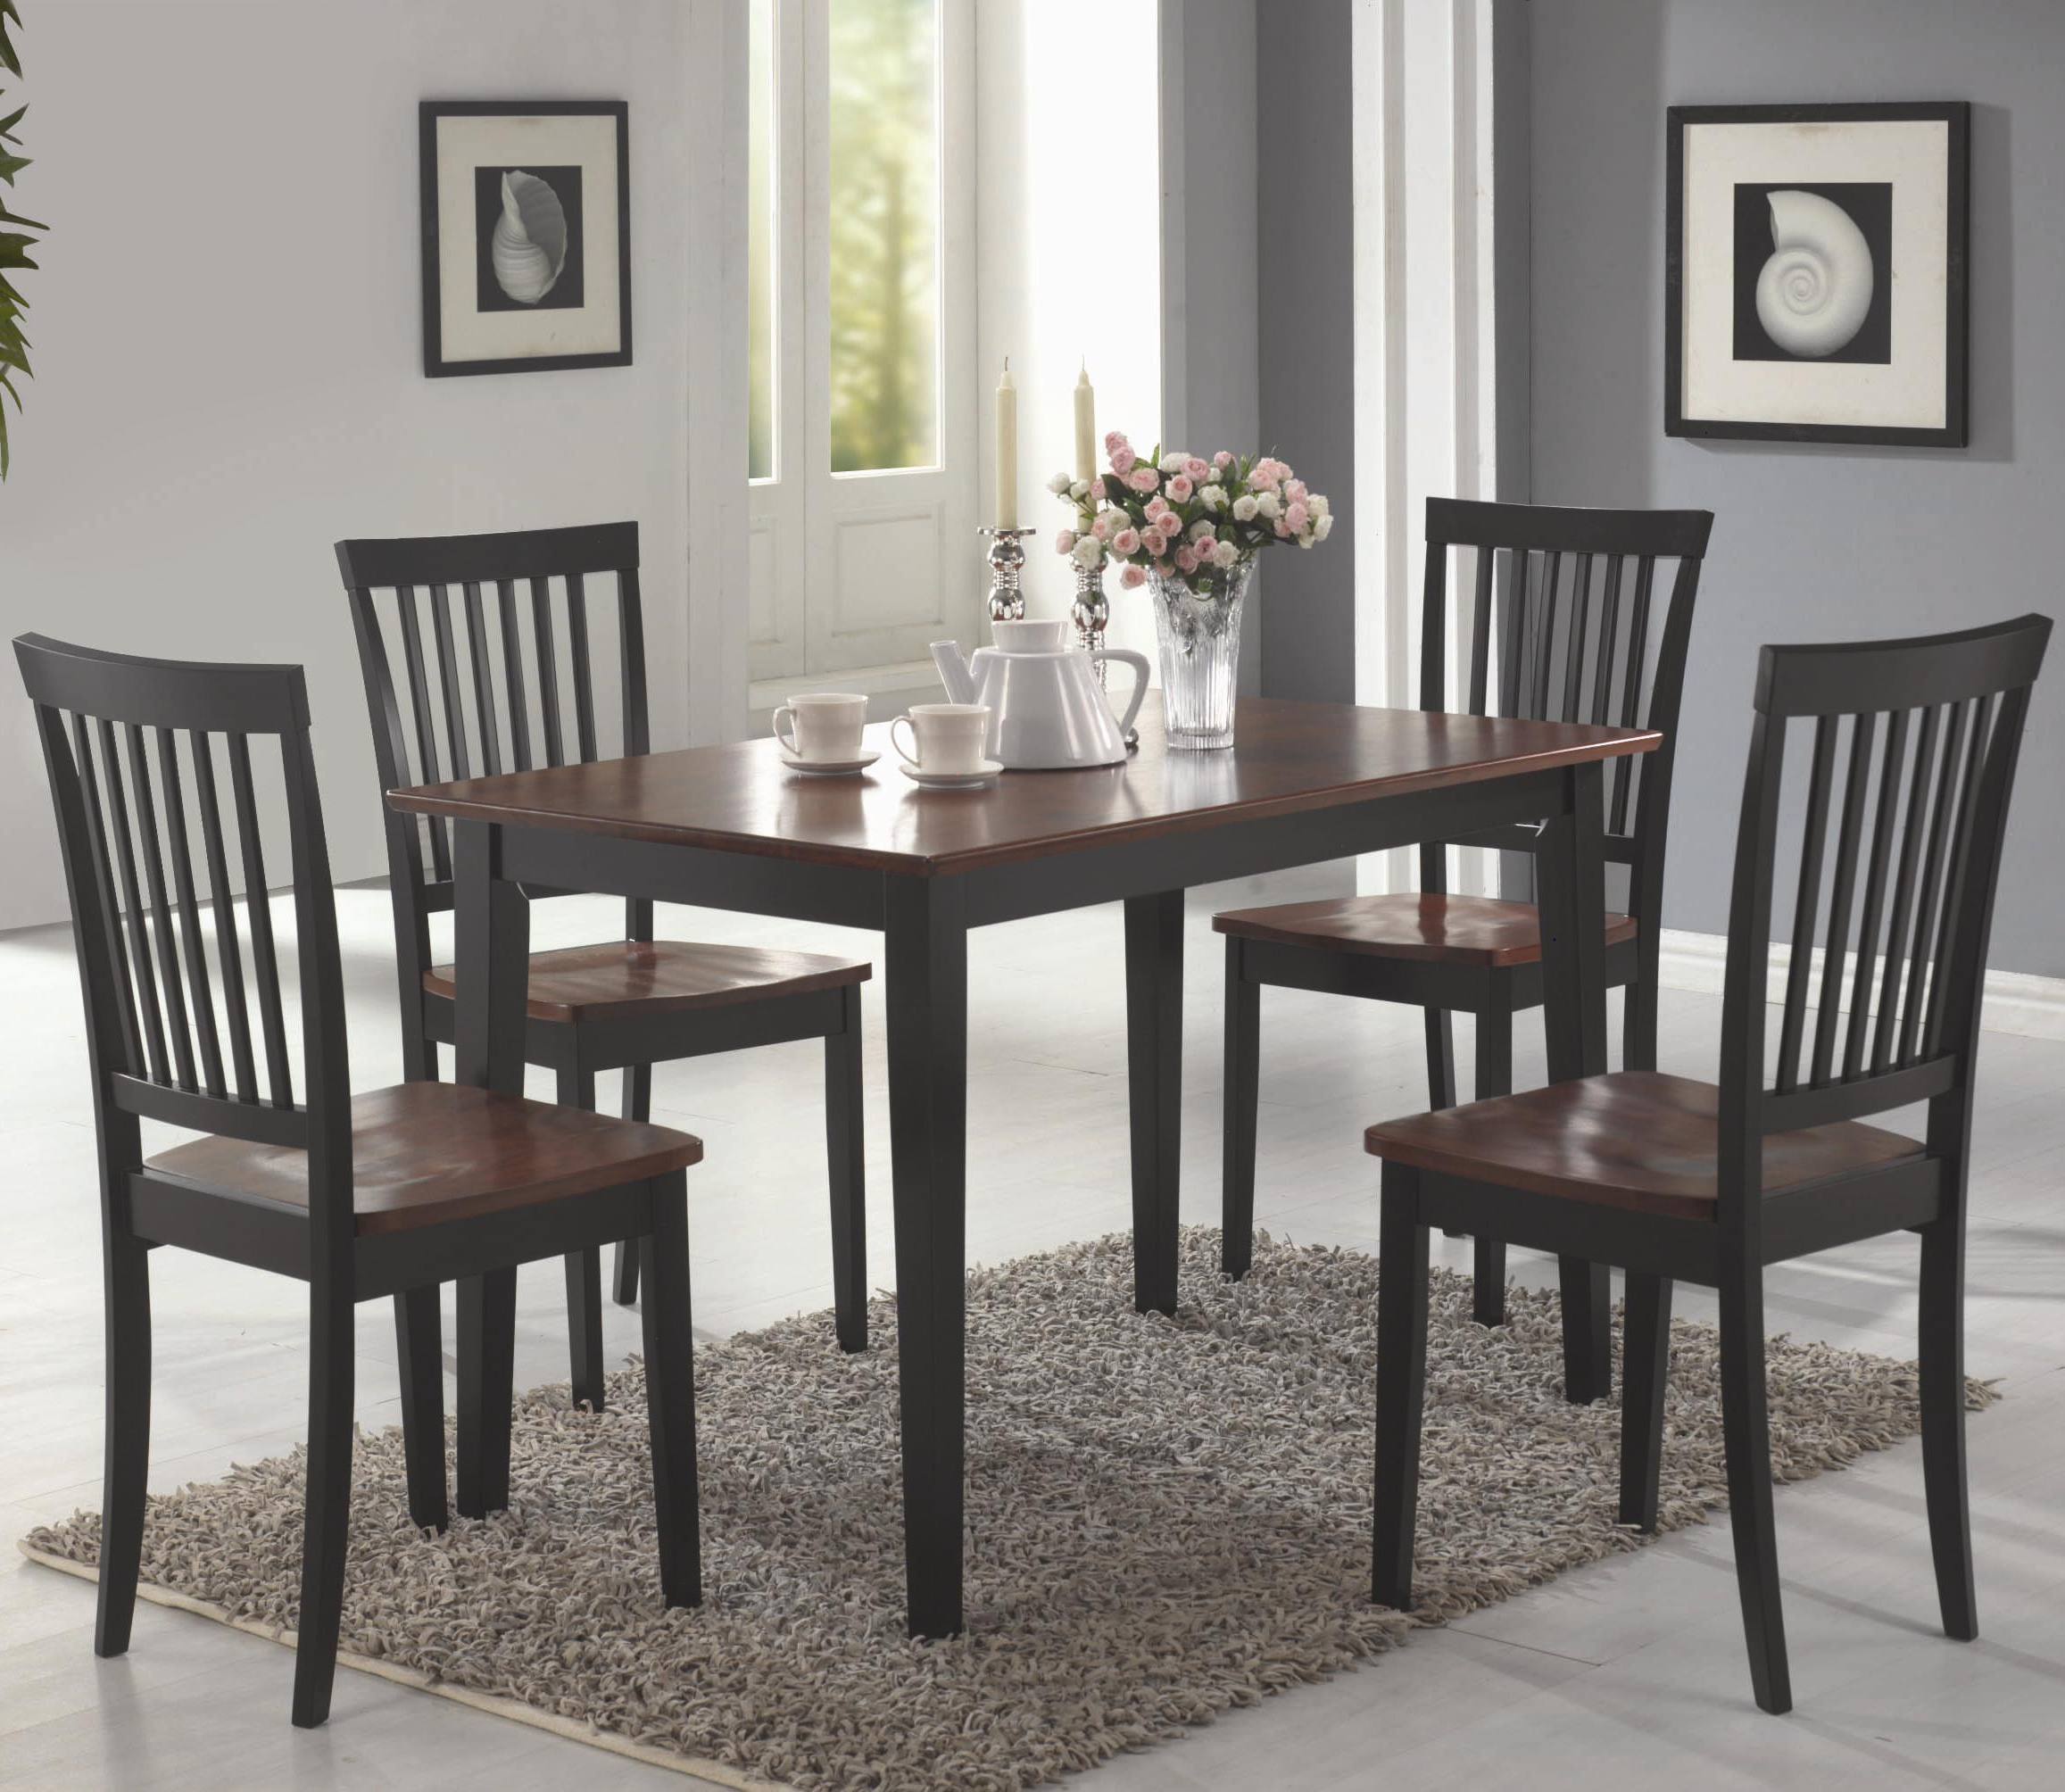 Preferred Cappuccino Finish Wood Classic Casual Dining Tables Regarding D177 150153 Gallery Dining Room Furnitureregency (View 23 of 30)